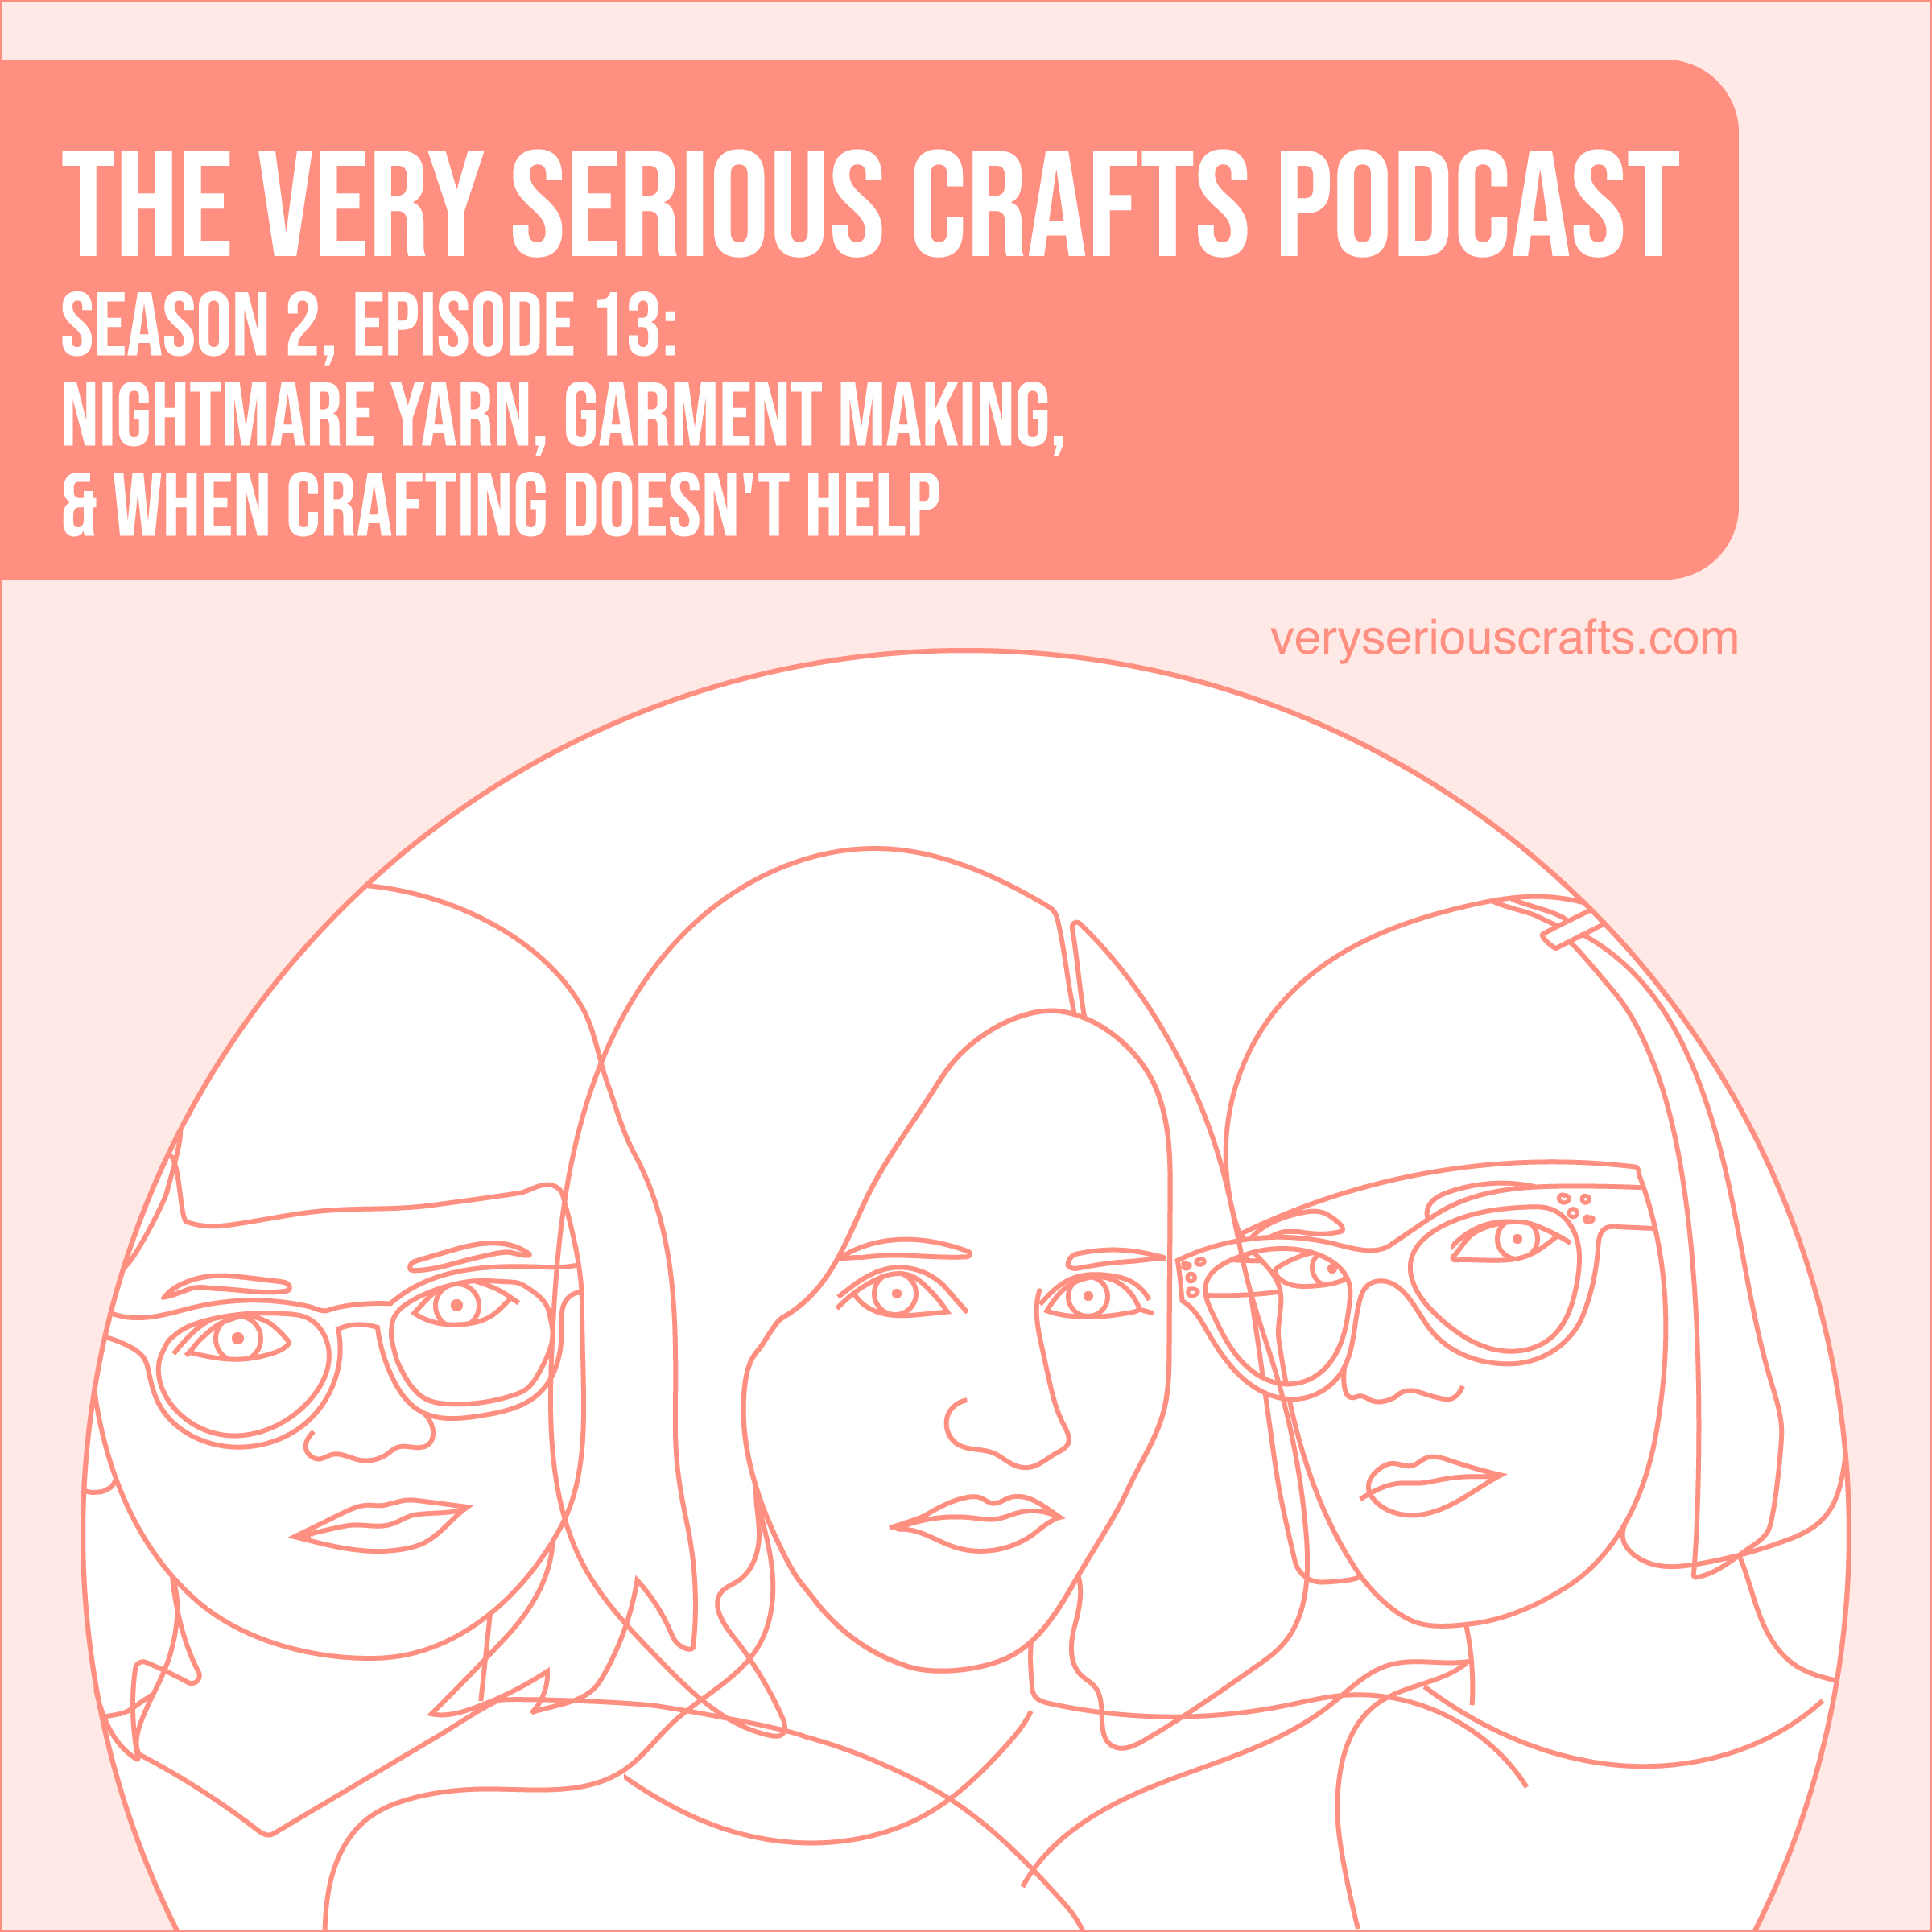 The Very Serious Crafts Podcast, Season 2: Episode 13 – Nightmare Yarn, Garment Making, and When Crafting Doesn't Help